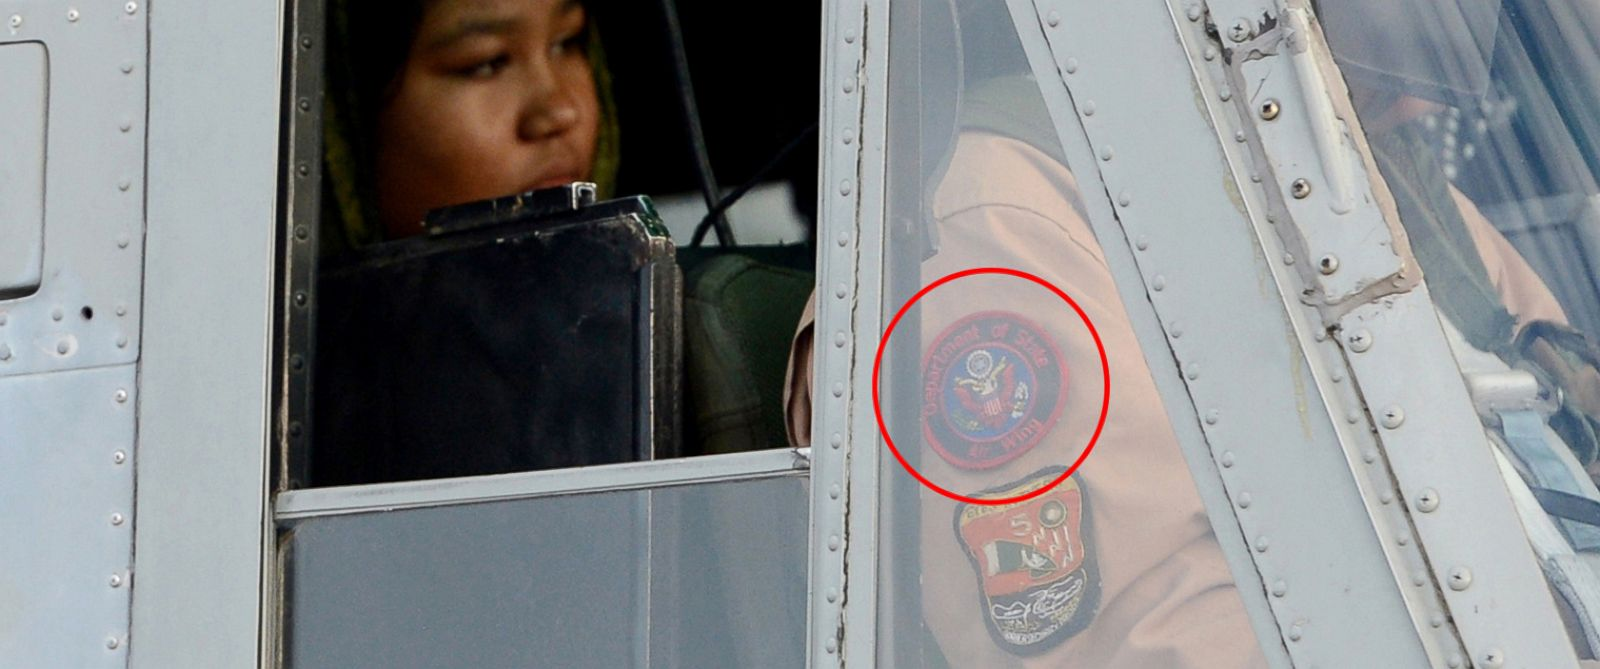 PHOTO: This Sept. 8, 2012 file photo shows a helicopter pilot with a patch on his uniform that appears to be that of the U.S. State Department's Air Wing.